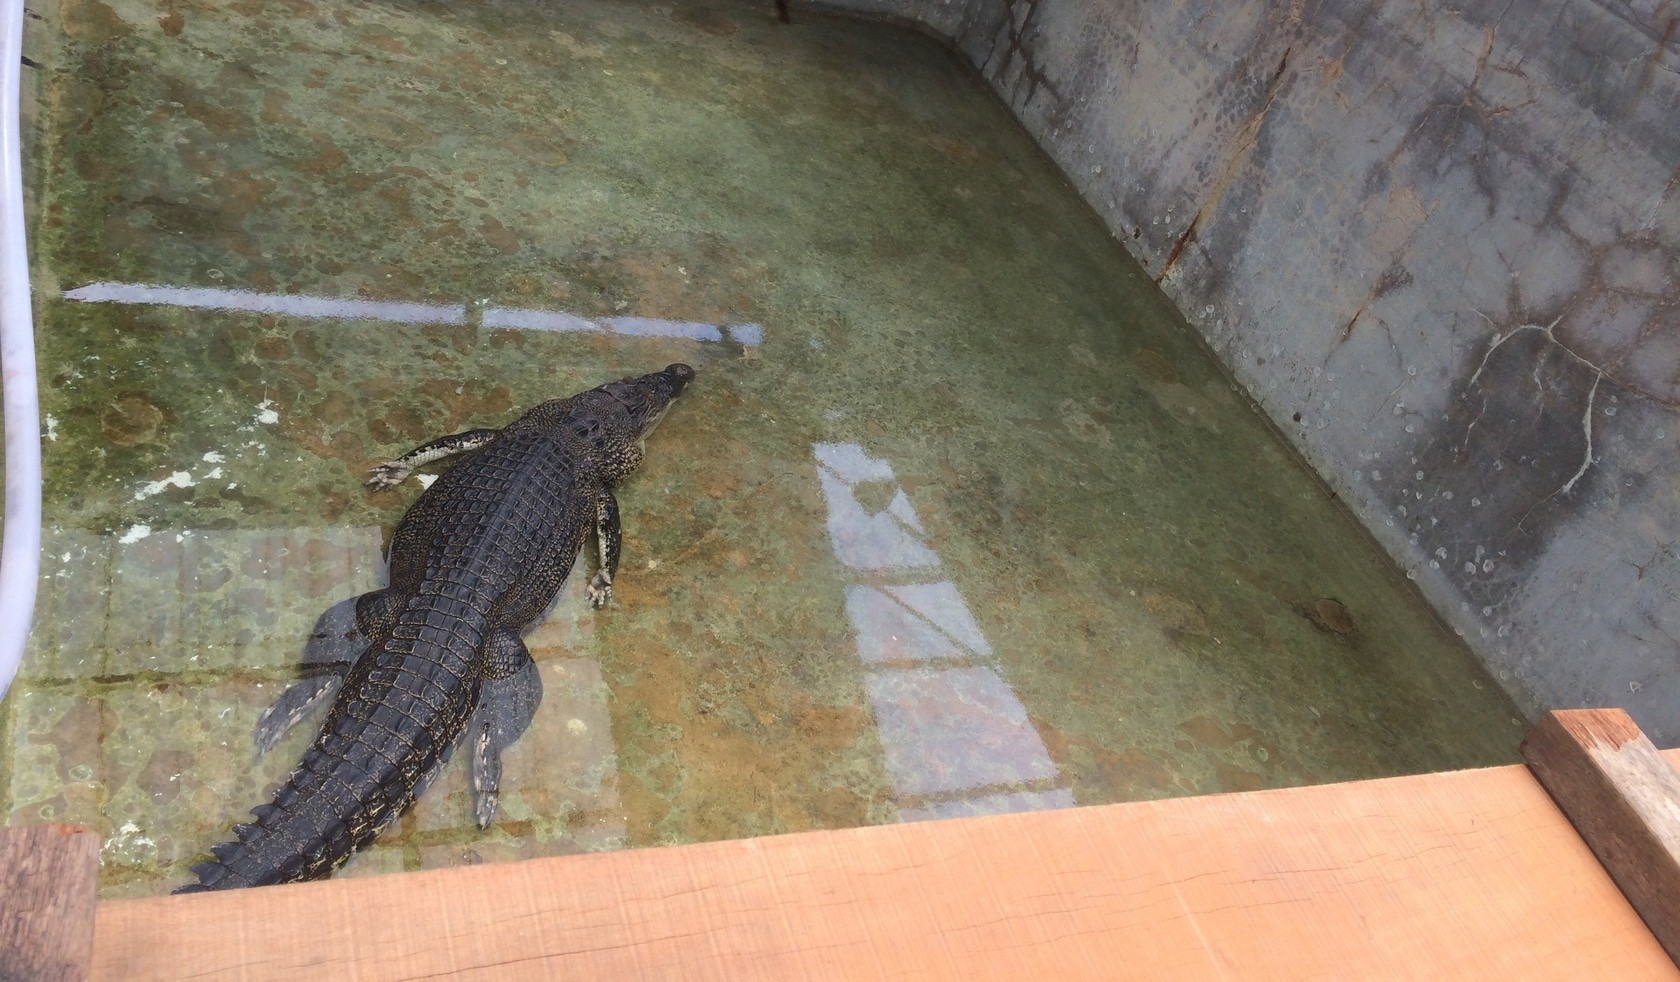 Laypang, Phuket's star croc, has finally started to eat | The Thaiger